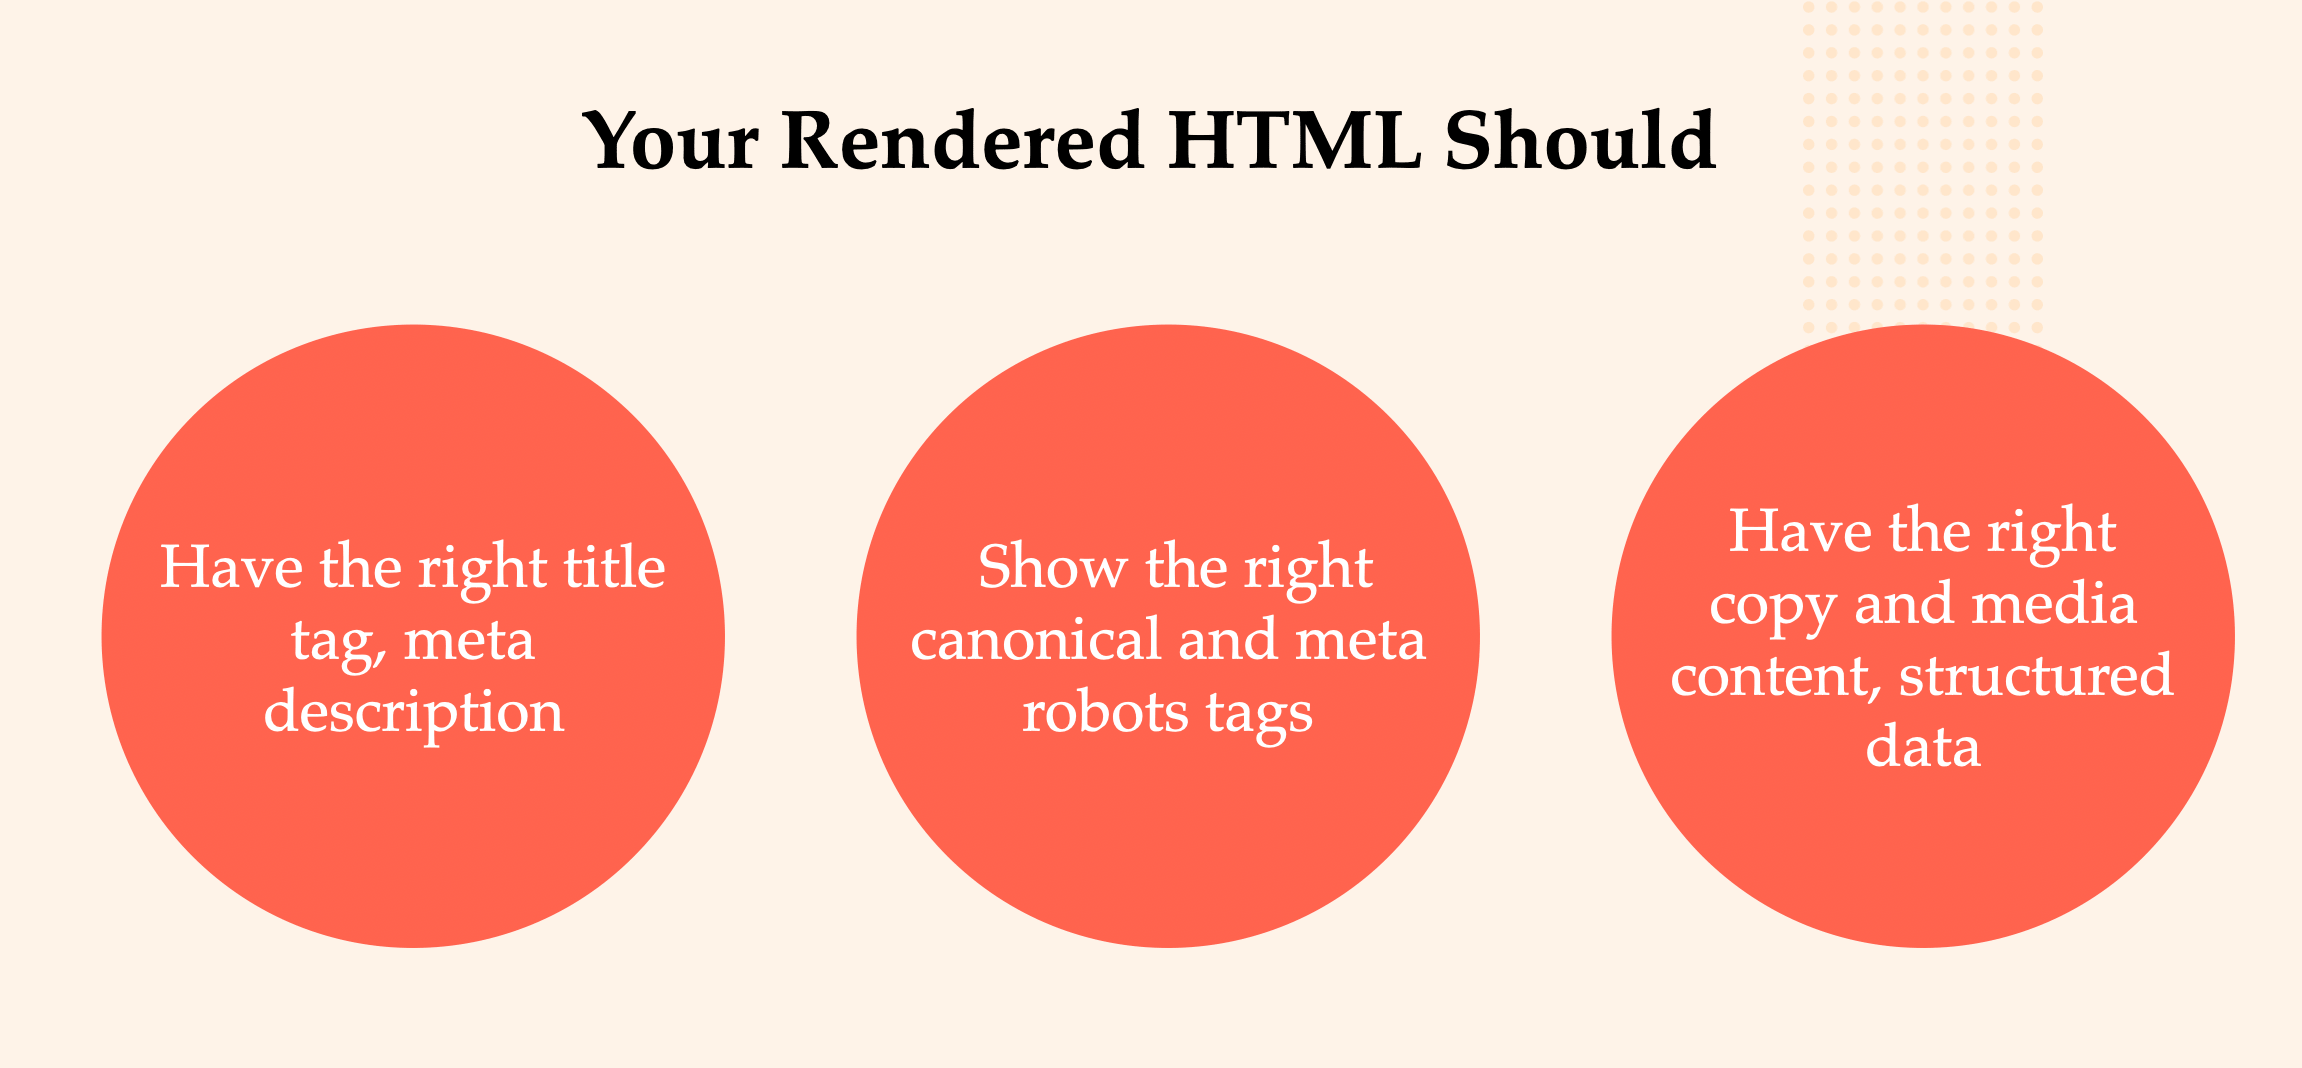 You need to make sure that rendered HTML shows the right information.